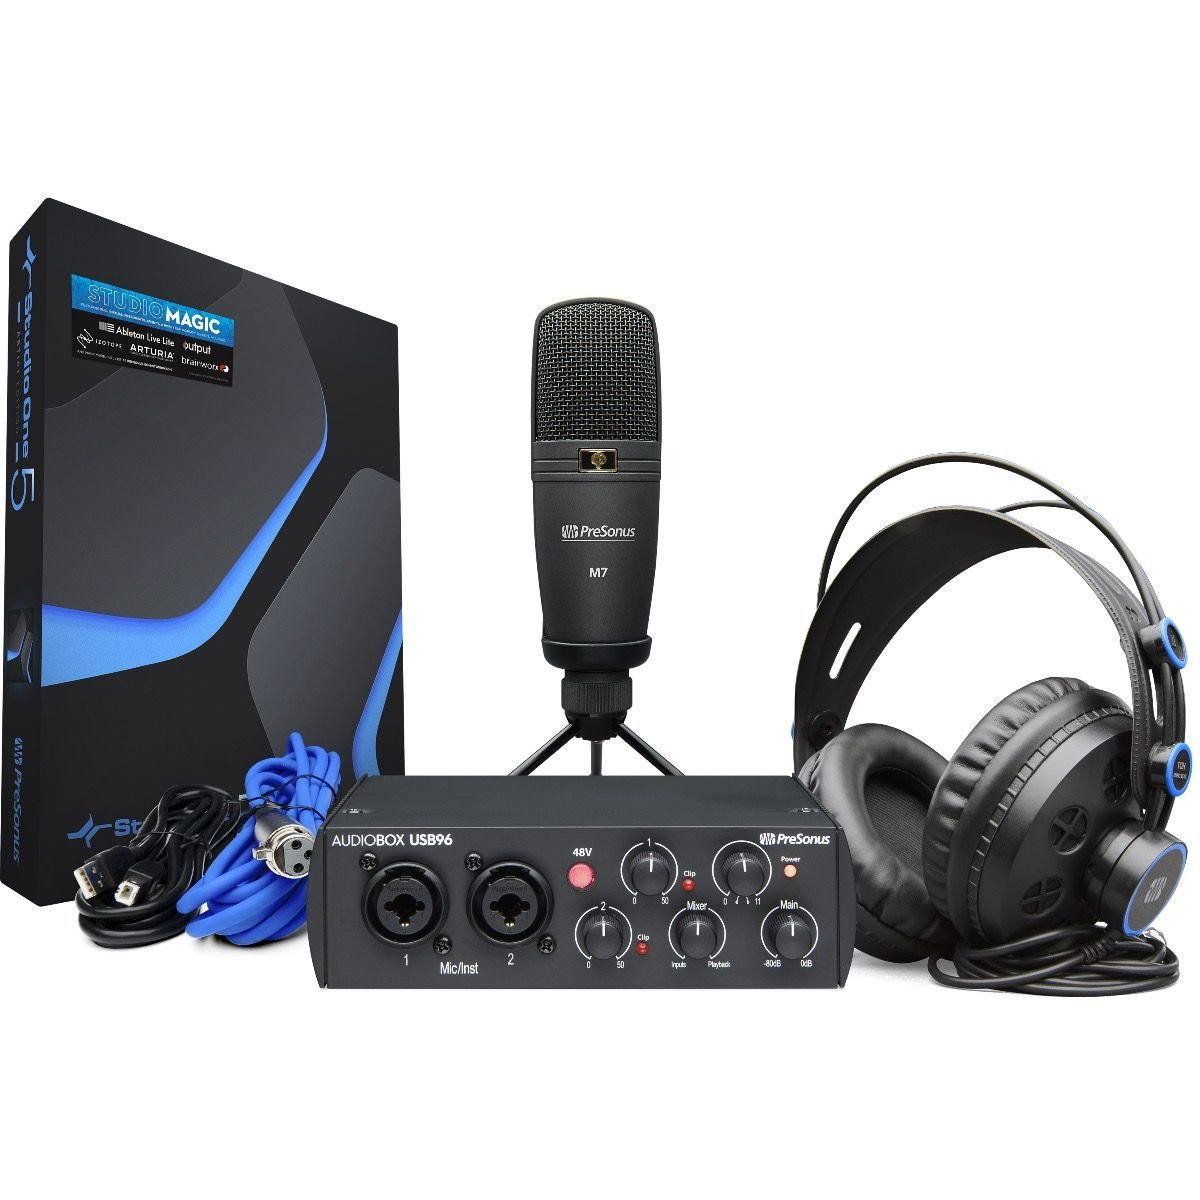 PRESONUS AUDIOBOX 96K 25TH ANNIVERSARY STUDIO BUNDLE, USB AUDIO INTERFACE AND ACCESSORIES